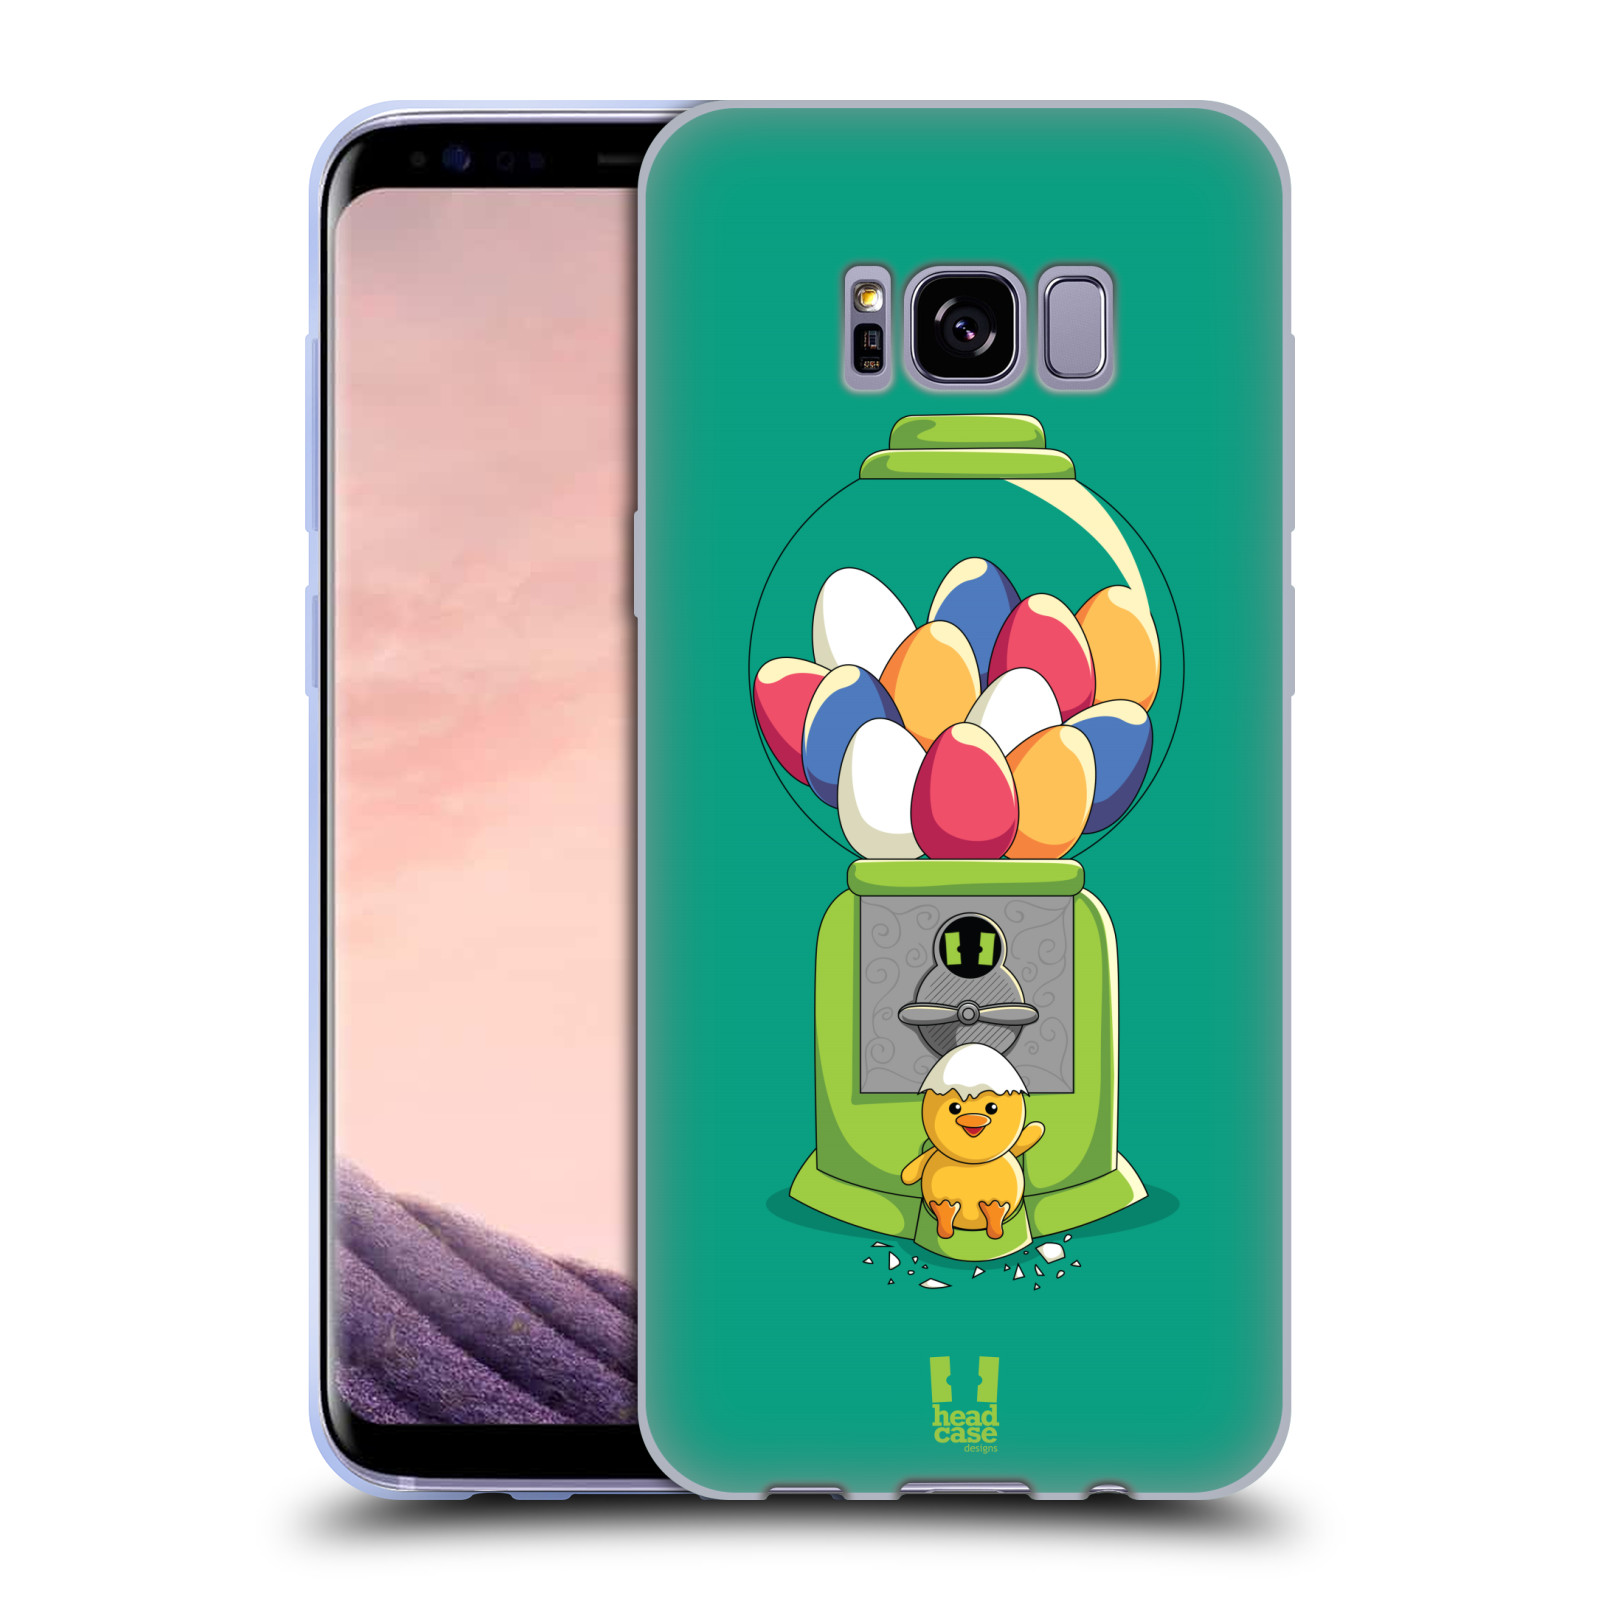 HEAD-CASE-DESIGNS-KAWAII-MACHINE-SOFT-GEL-CASE-FOR-SAMSUNG-GALAXY-S8-S8-PLUS